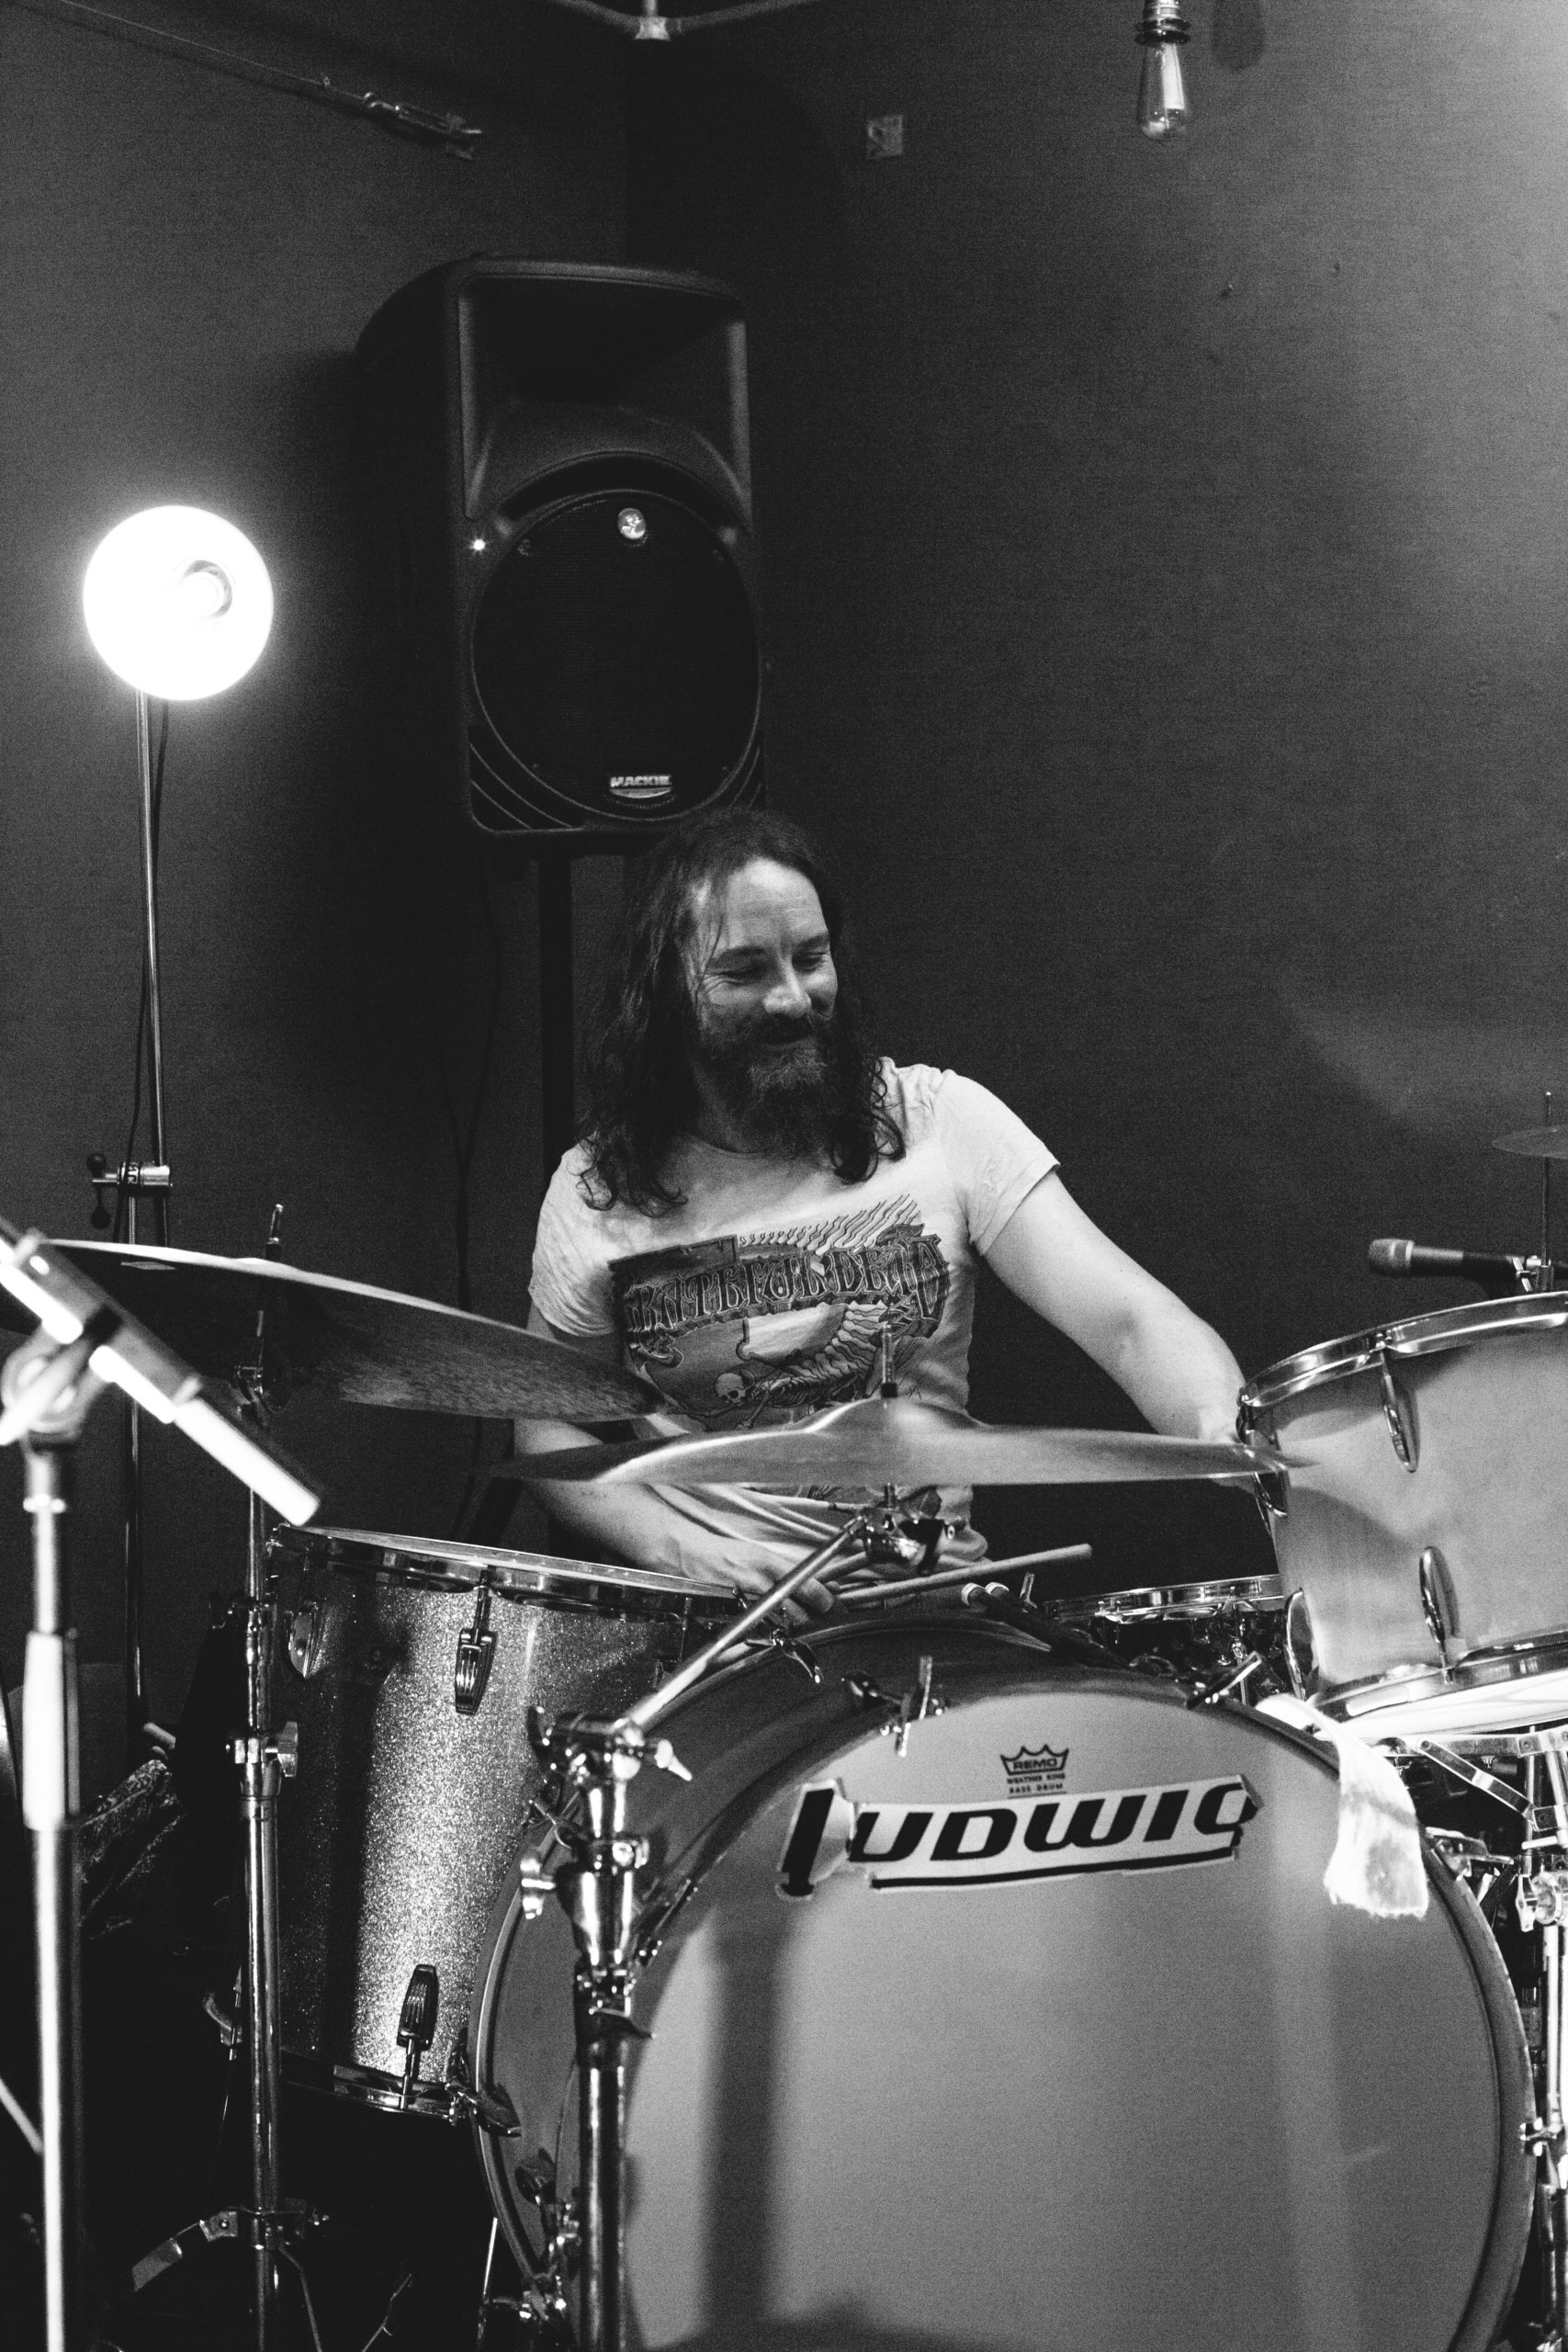 Ryann Snow playing drums